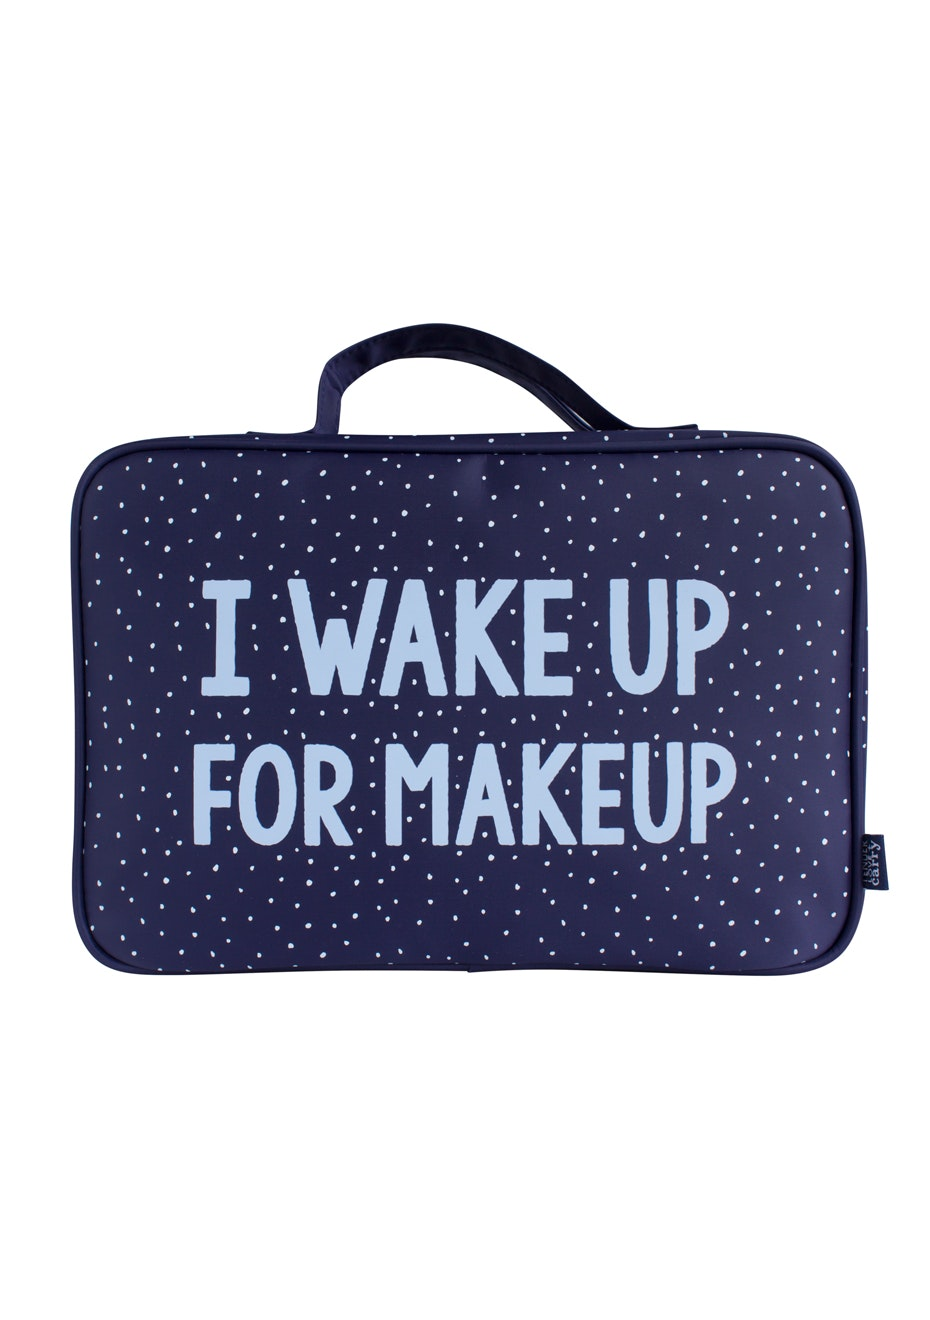 TL+C - I Wake Up Hanging Washbag  - Navy